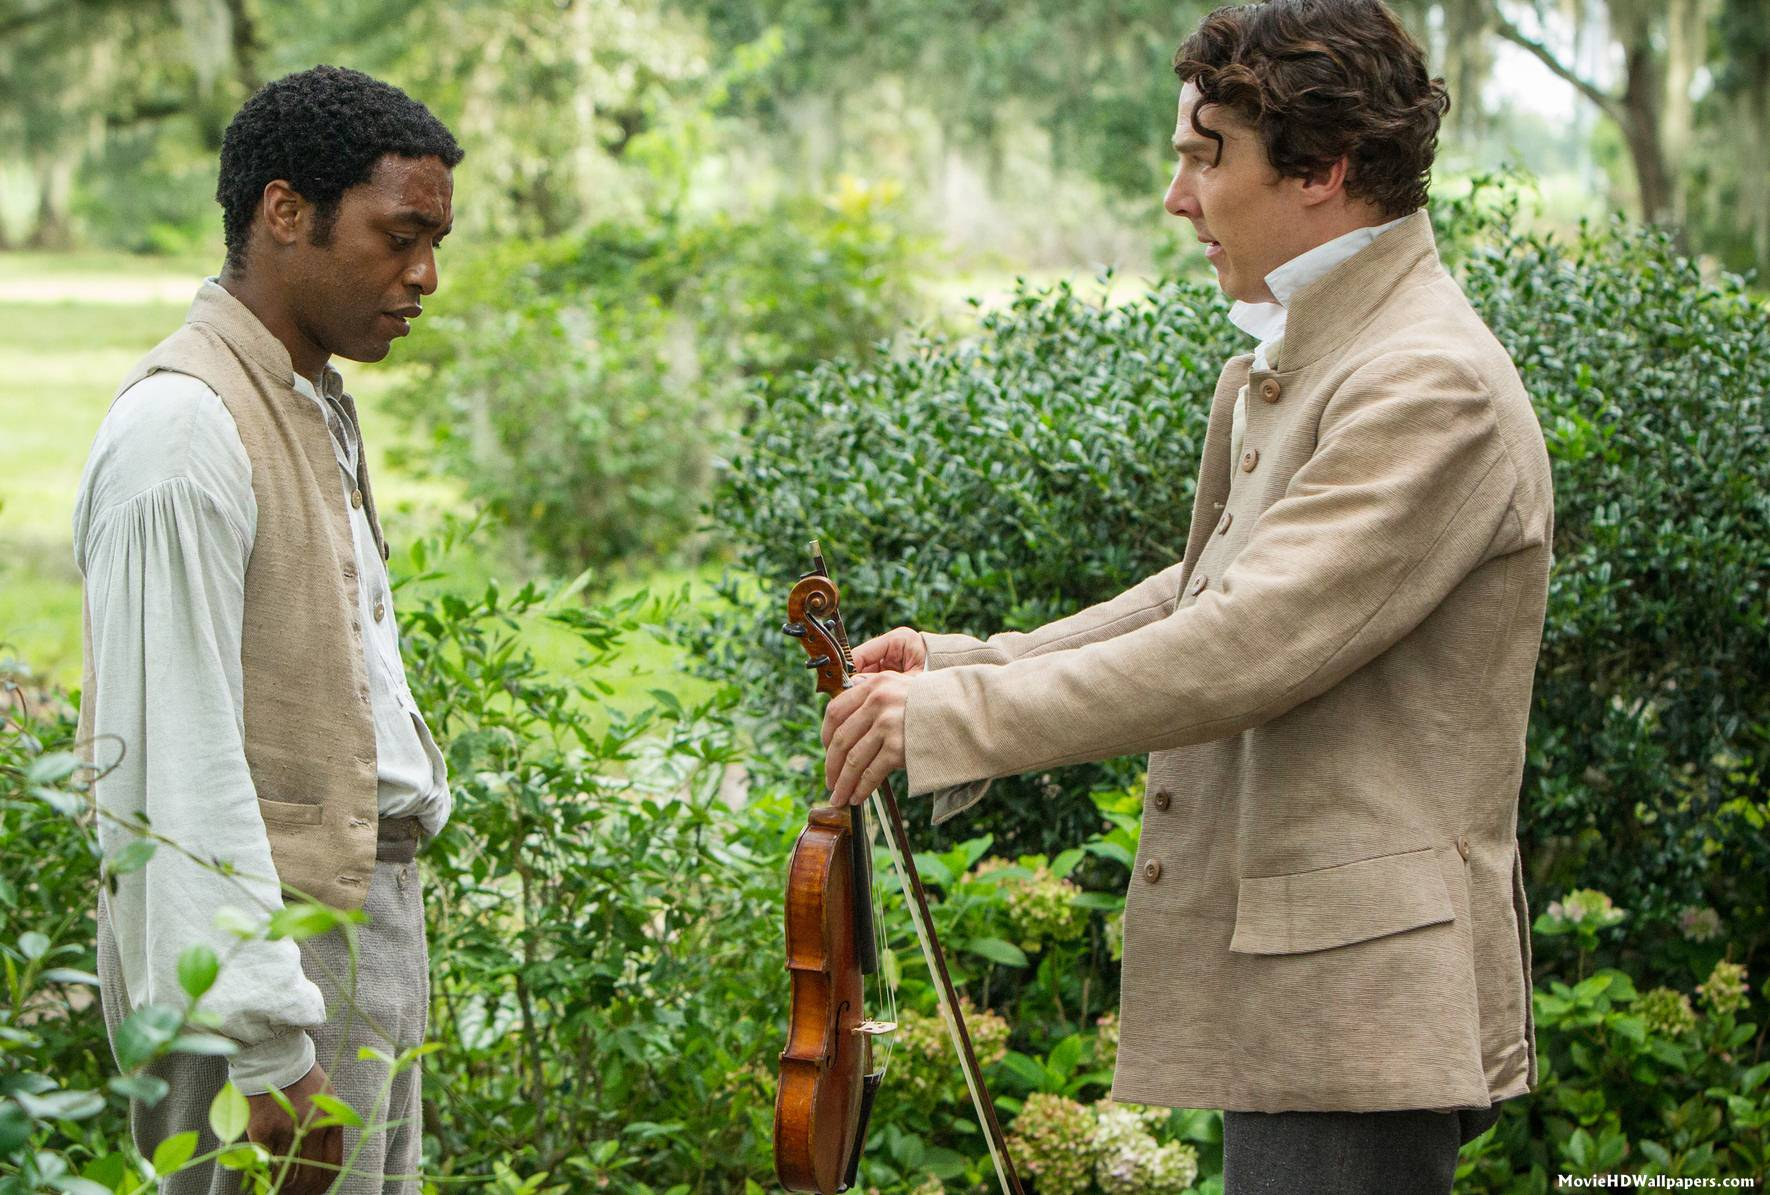 the movie 12 years a slave released in 2013 12 years a slave is a 2013 released biographical drama movie directed by steve mcqueen and written by john ridley.